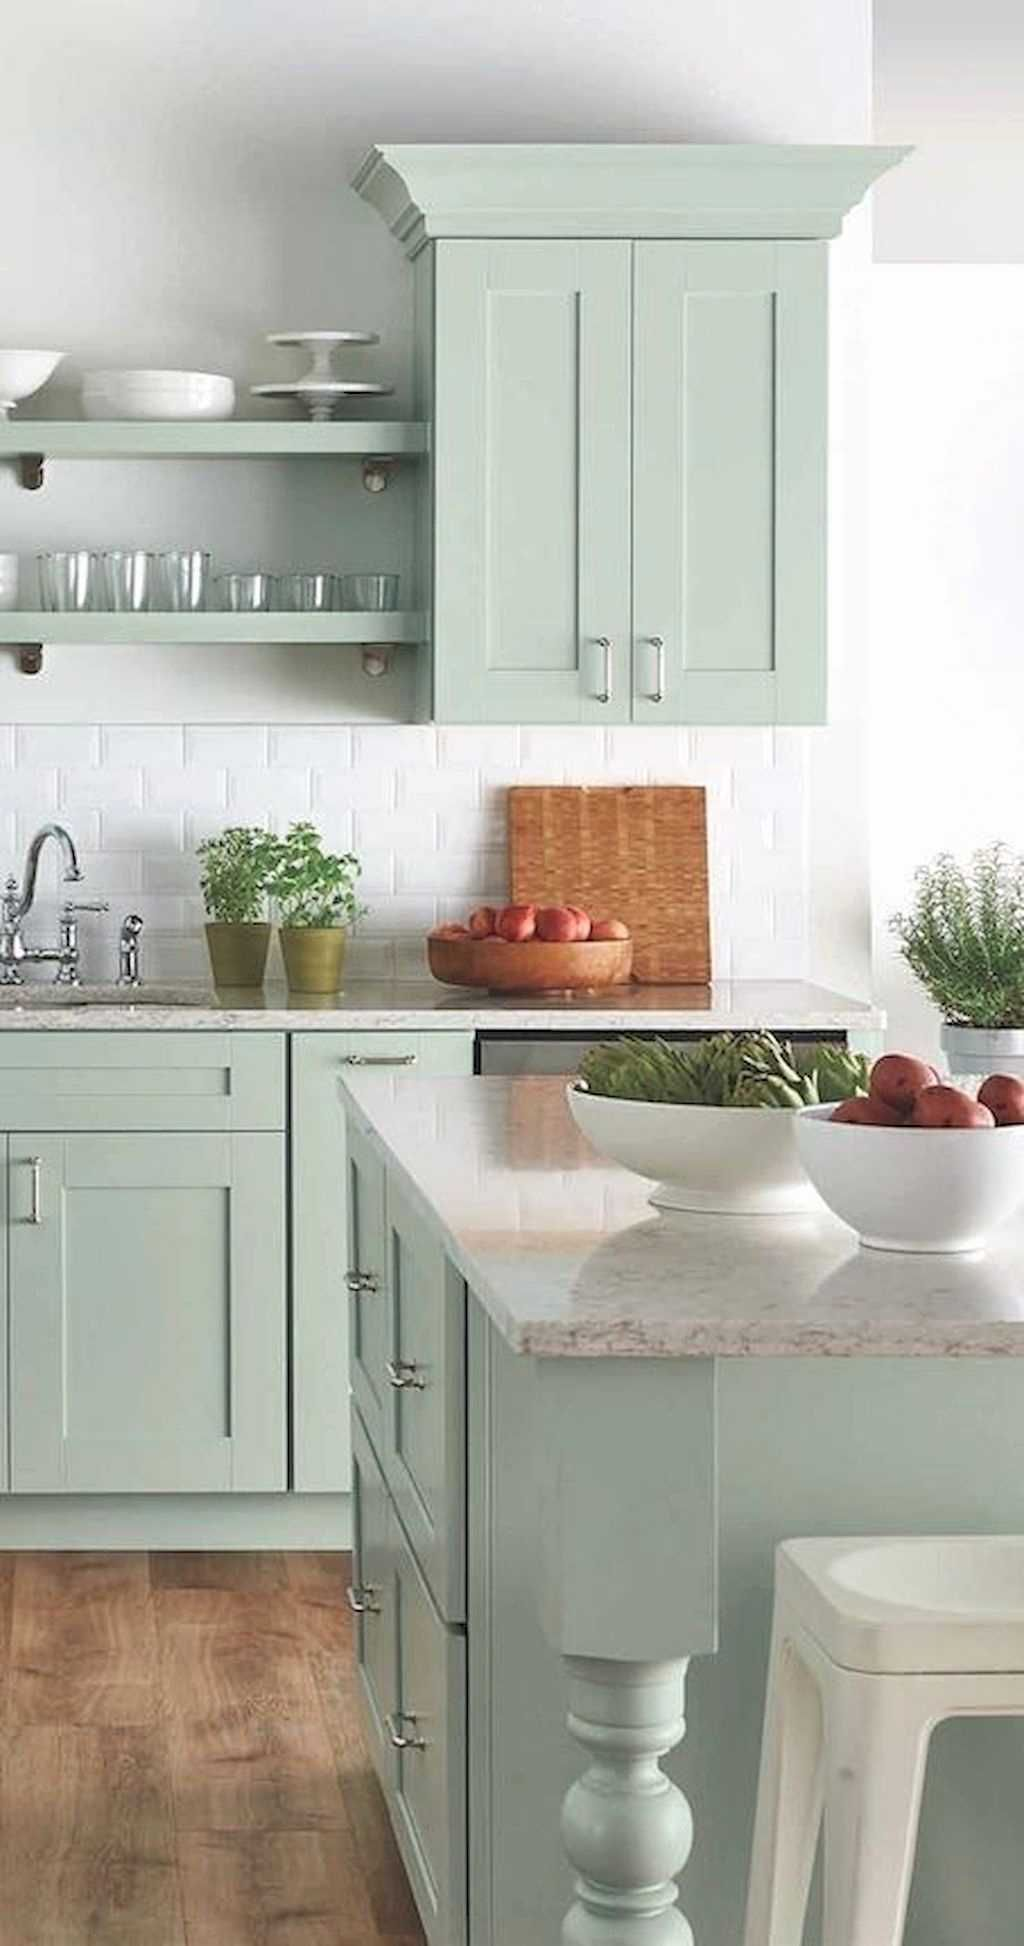 joanna gaines farmhouse rustic best of rustic country kitchen ideas best take a tour chip and on farmhouse kitchen joanna gaines design id=33557